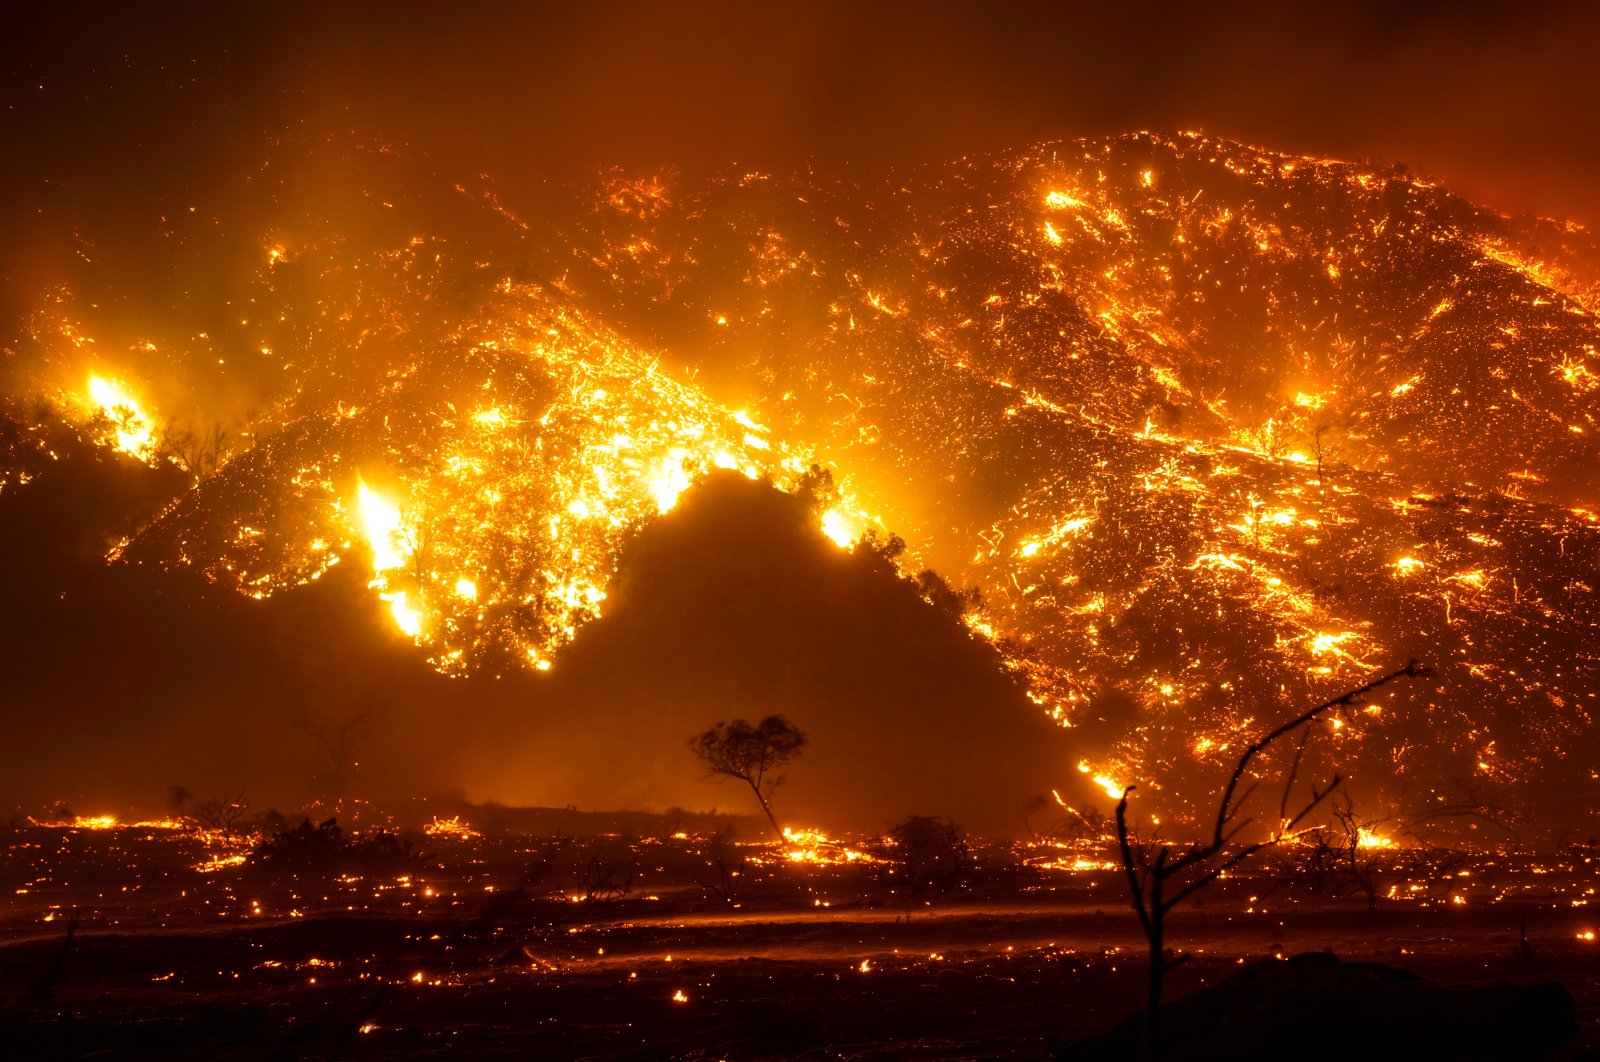 A wildfire escalates into nearby vegetation in Silverado, California, U.S., Dec. 3, 2020. (Photo by Getty Images)